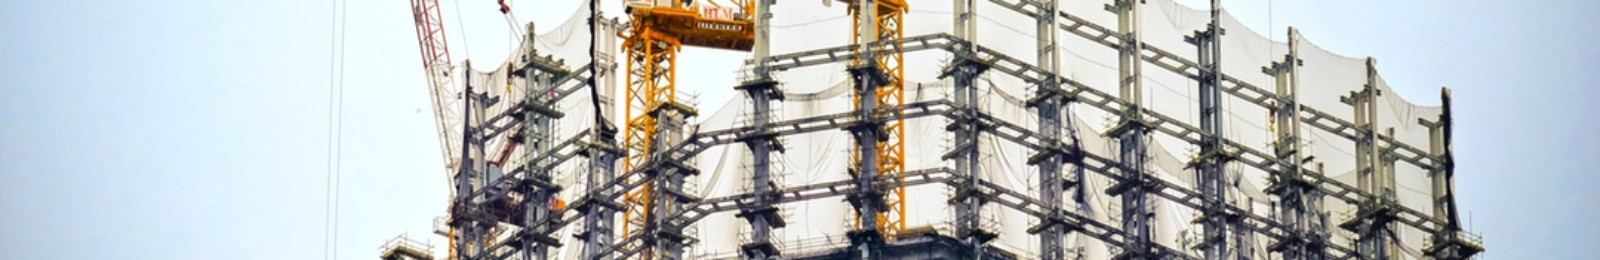 Construction Litigation and Dispute Resolutionpage banner image